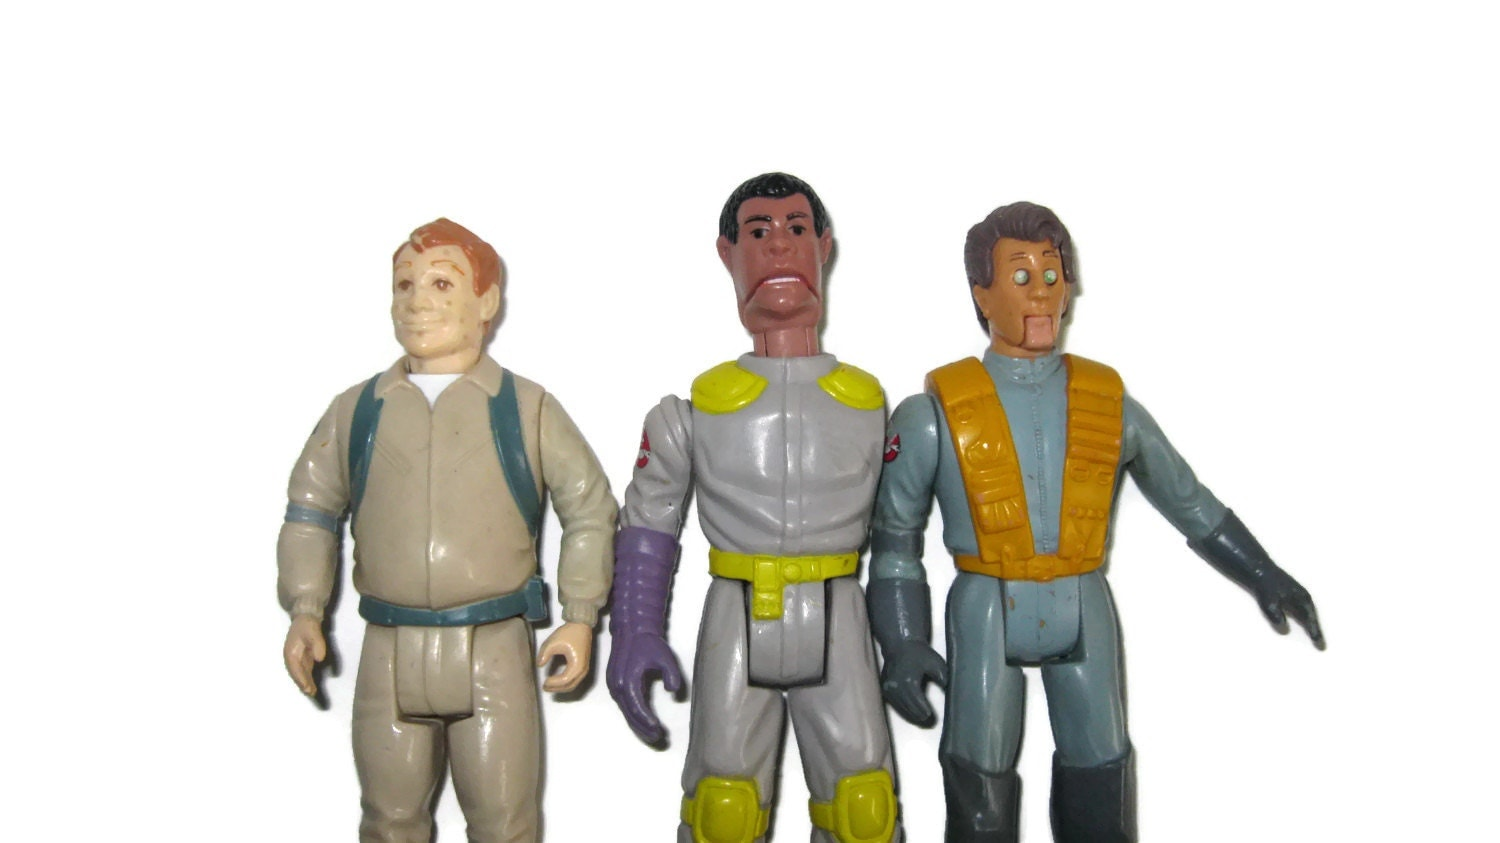 80s Toys Action Figures : Tlc ghostbusters action figures s toys